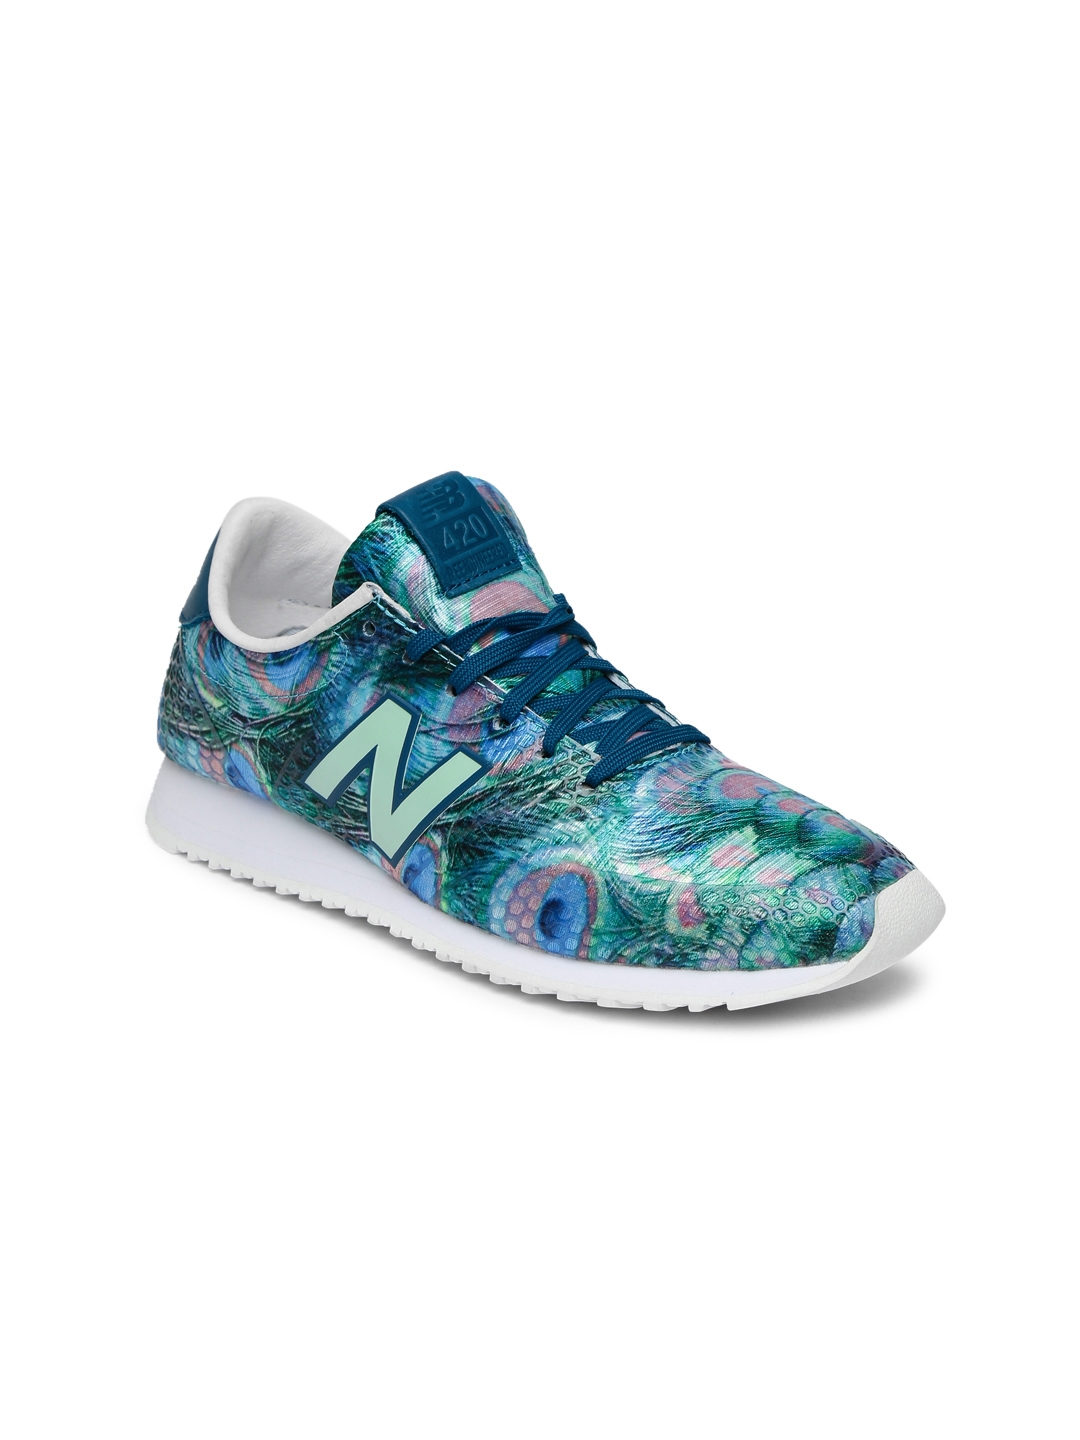 51d04c4edee31 Buy New Balance Women Green Reengineered 420 Printed Sneakers ...